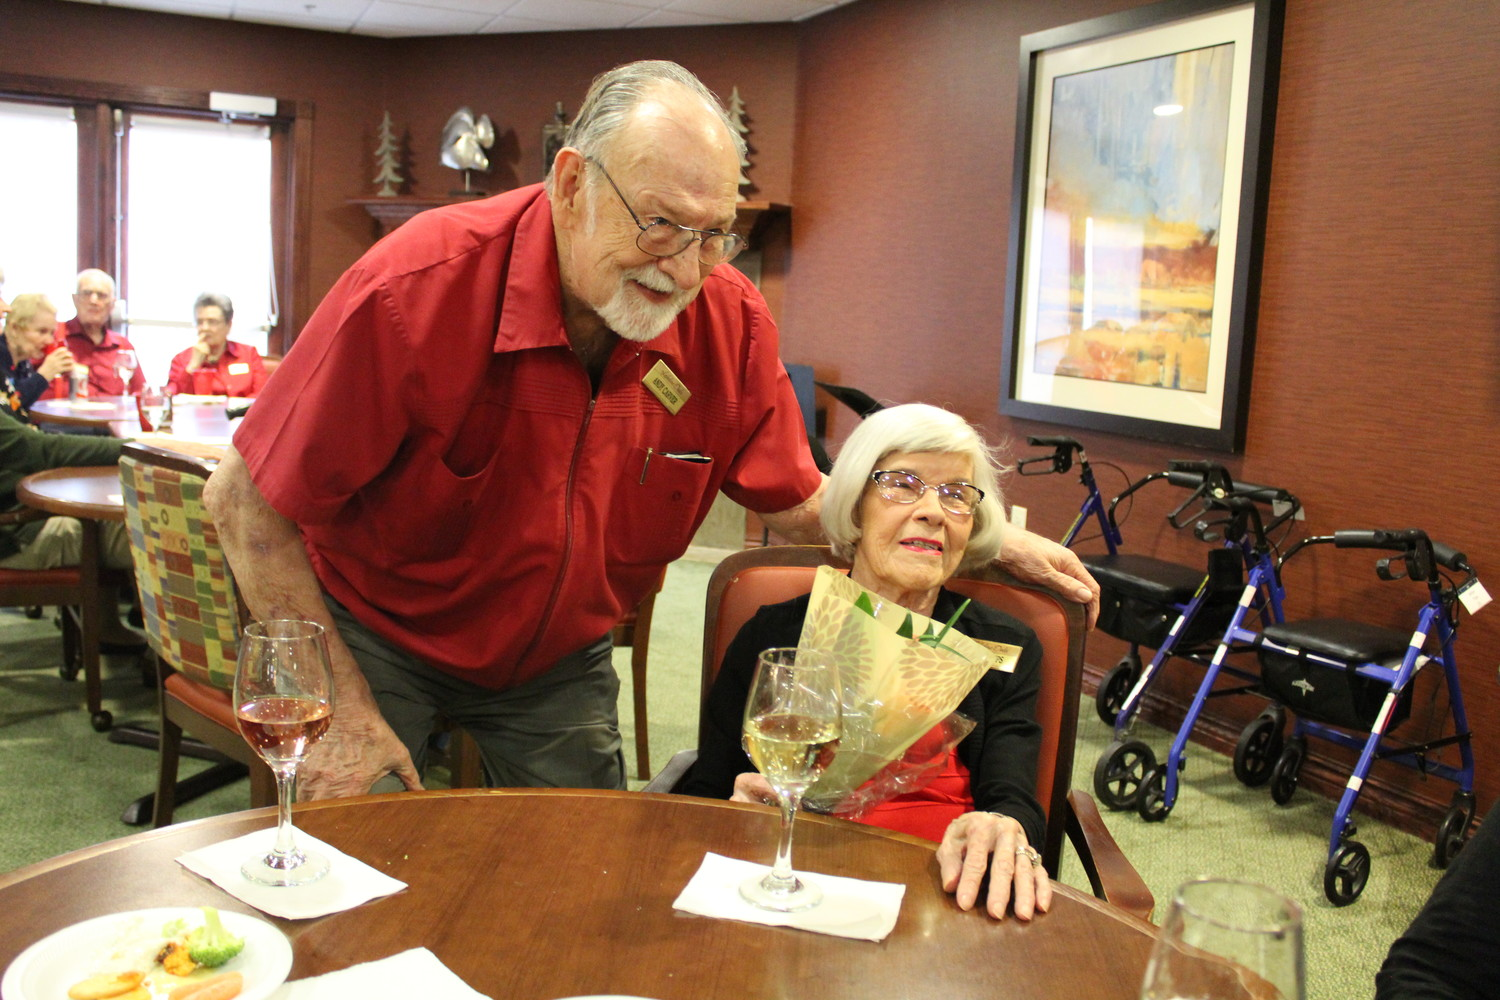 Andy Carver (left) and Billie Tips (right) pose after Carver surprised Tips with a bouquet of flowers during social hour at Lakeline Oaks in Cedar Park, Friday, Feb. 2.